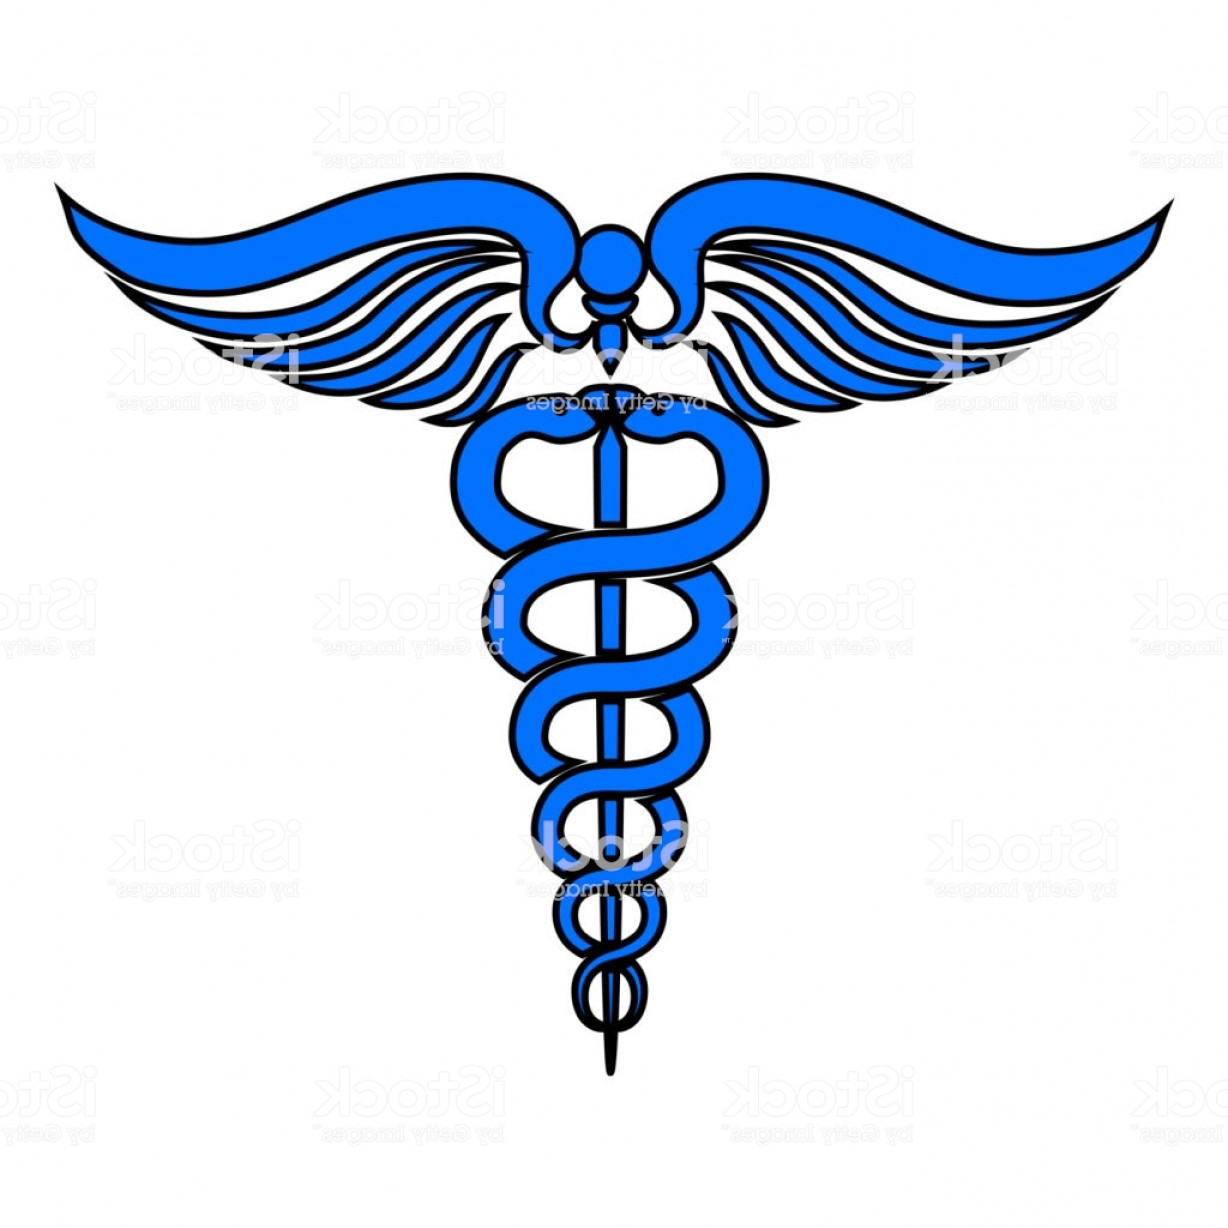 Medical Scepter Vector: Caduceus Medical Symbol Vector Gm